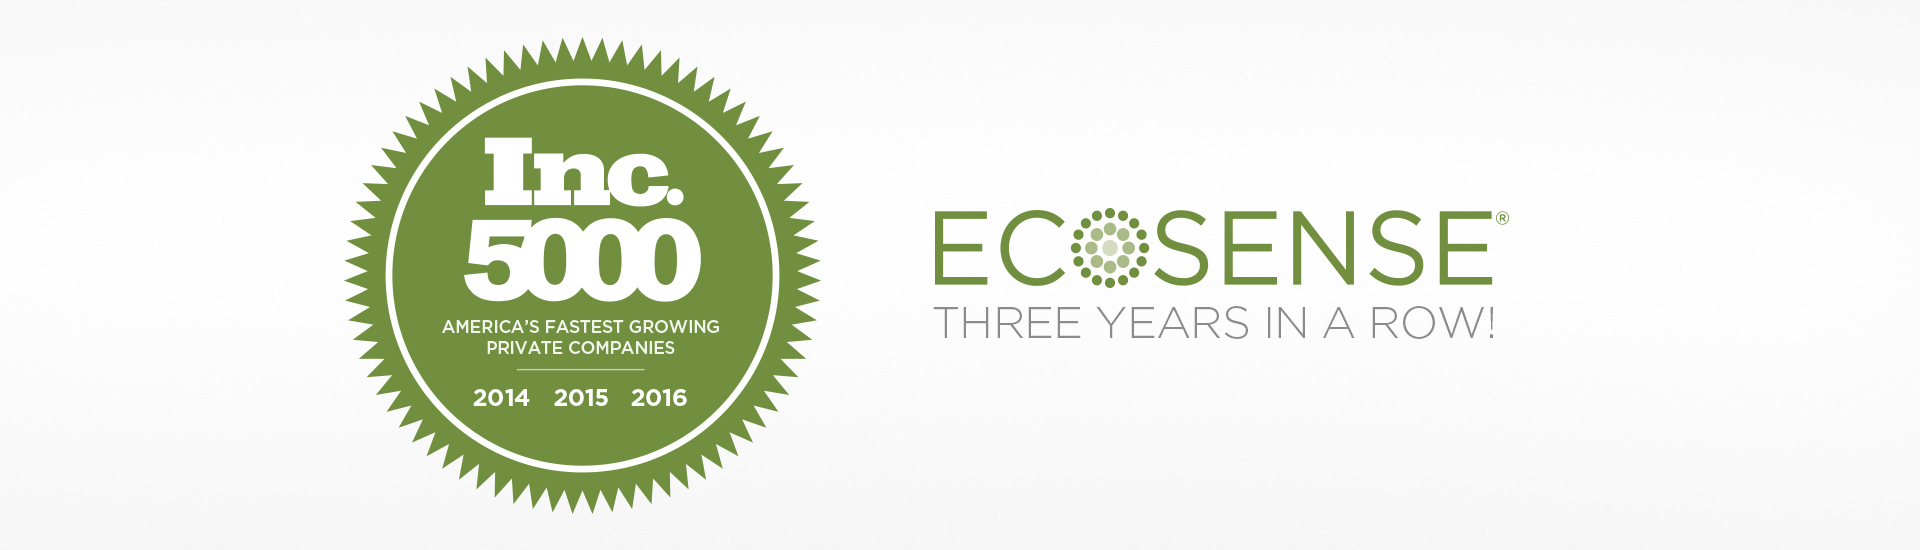 ECOSENSE INC 5000 Three Years In A Row